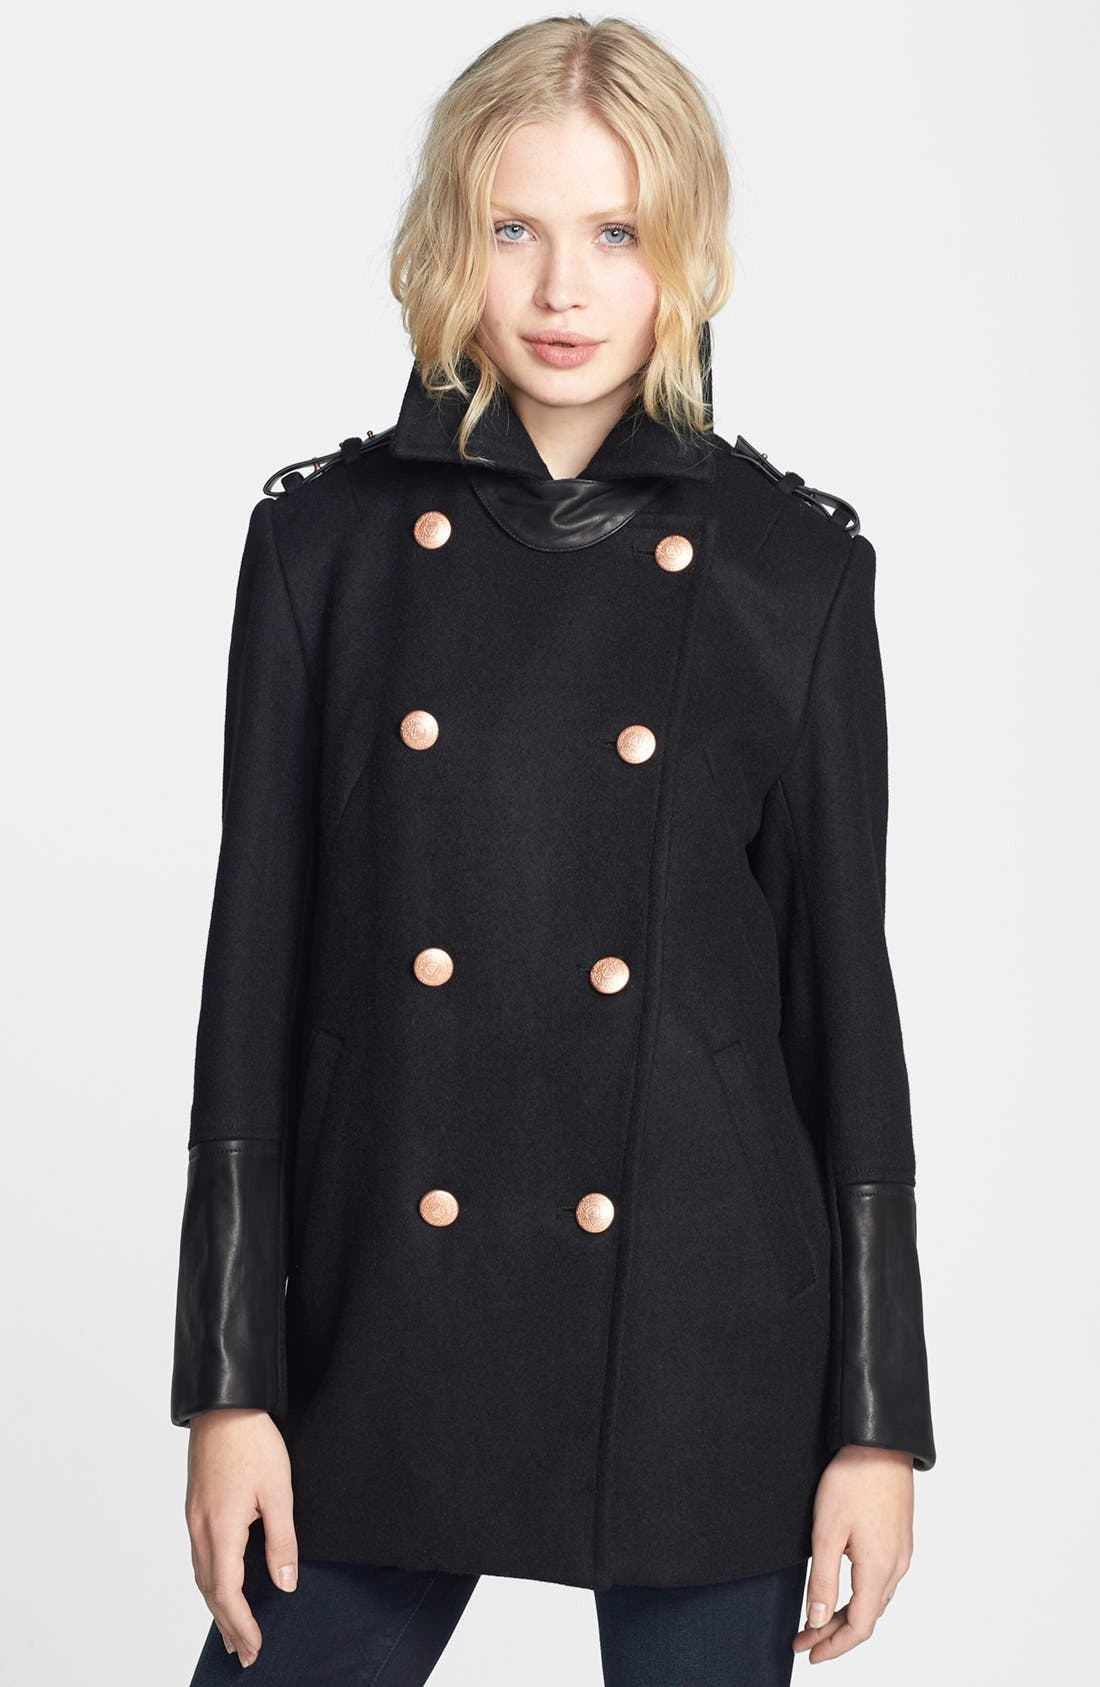 Main Image - ELEVENPARIS 'Tchad' Wool Blend Military Peacoat